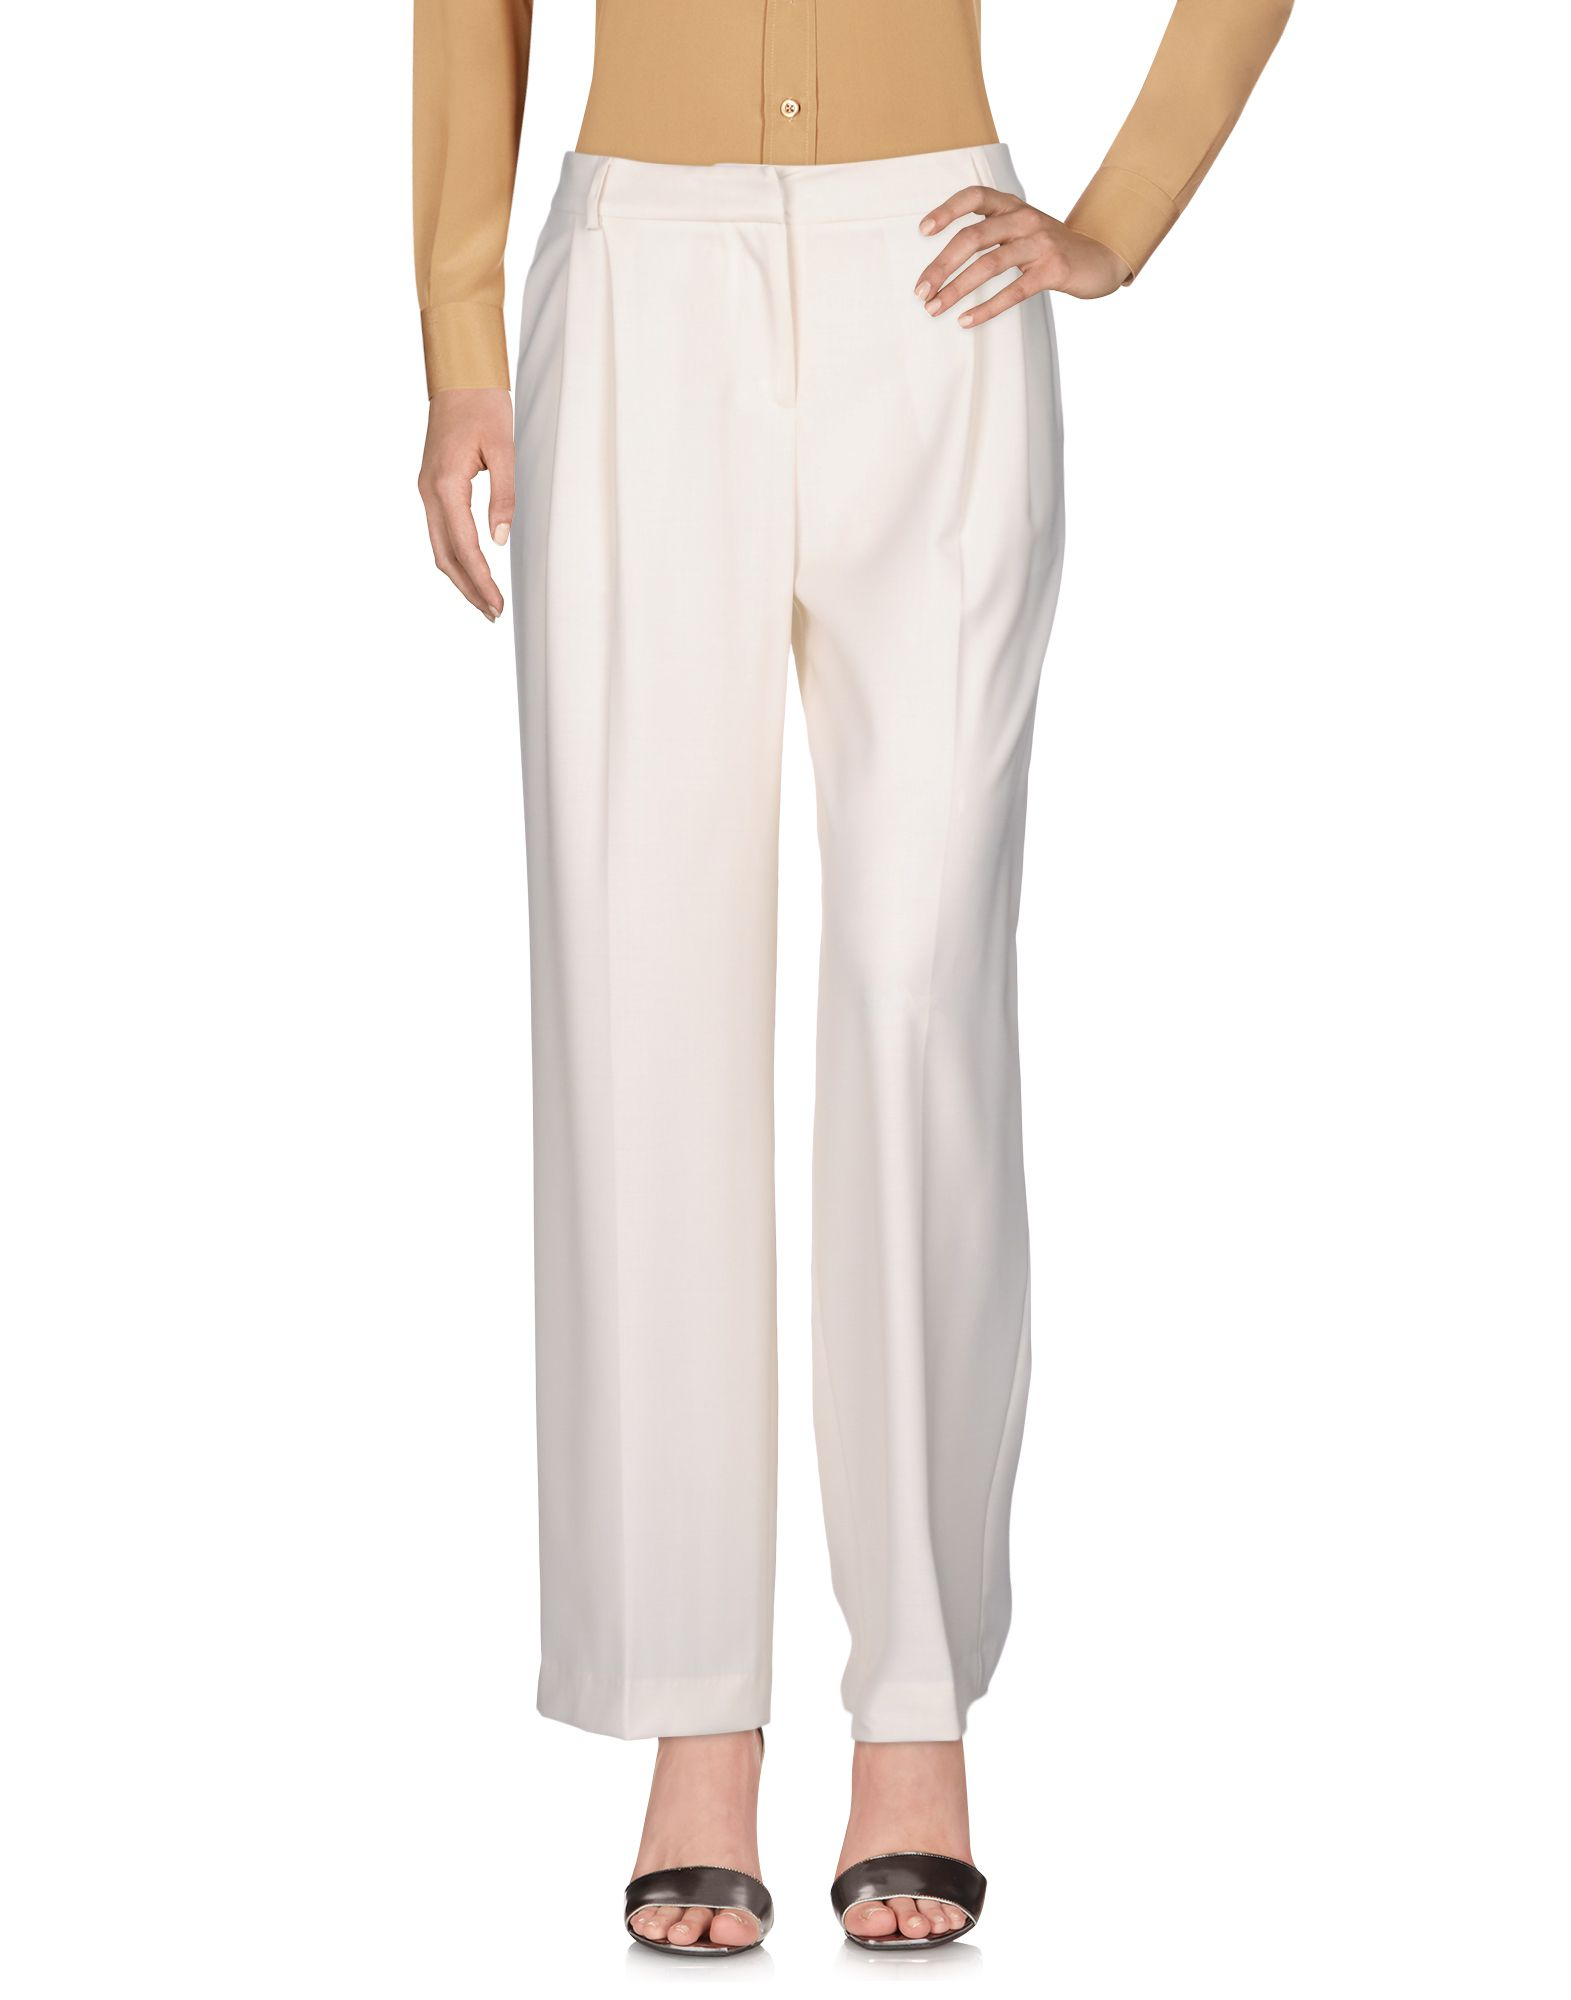 ALESSANDRO DELL'ACQUA Casual Pants in Ivory